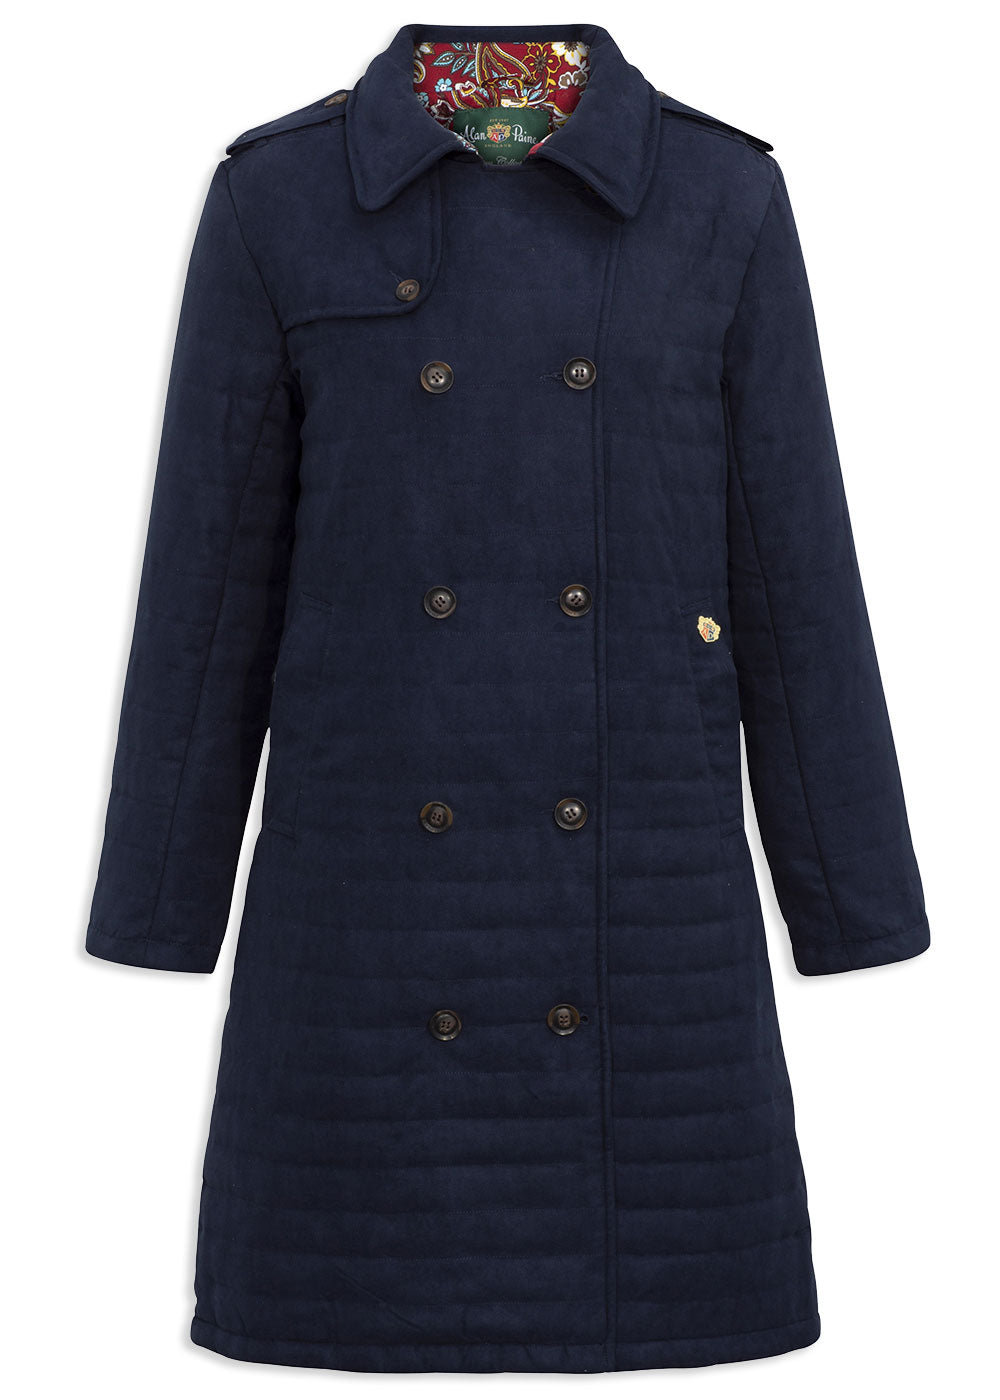 Navy Alan Paine Felwell Ladies Quilt 3/4 Coat